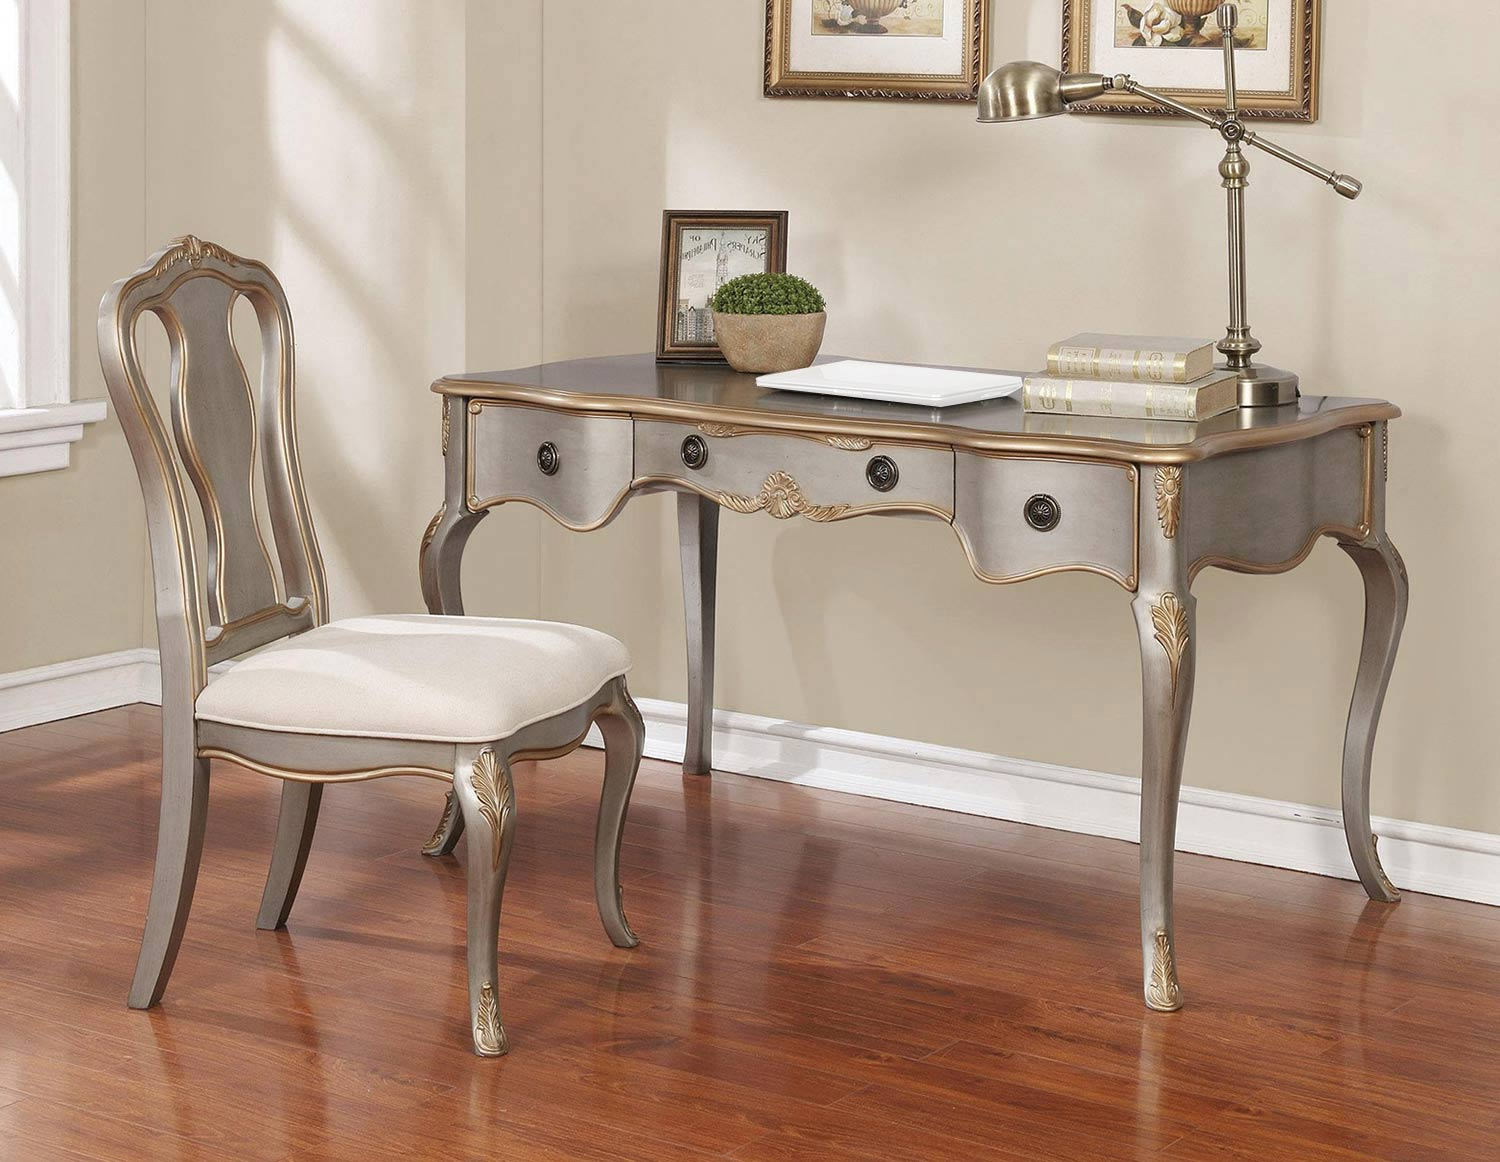 Coaster 801681 2-PC Desk Set - Gold Brushed Silver